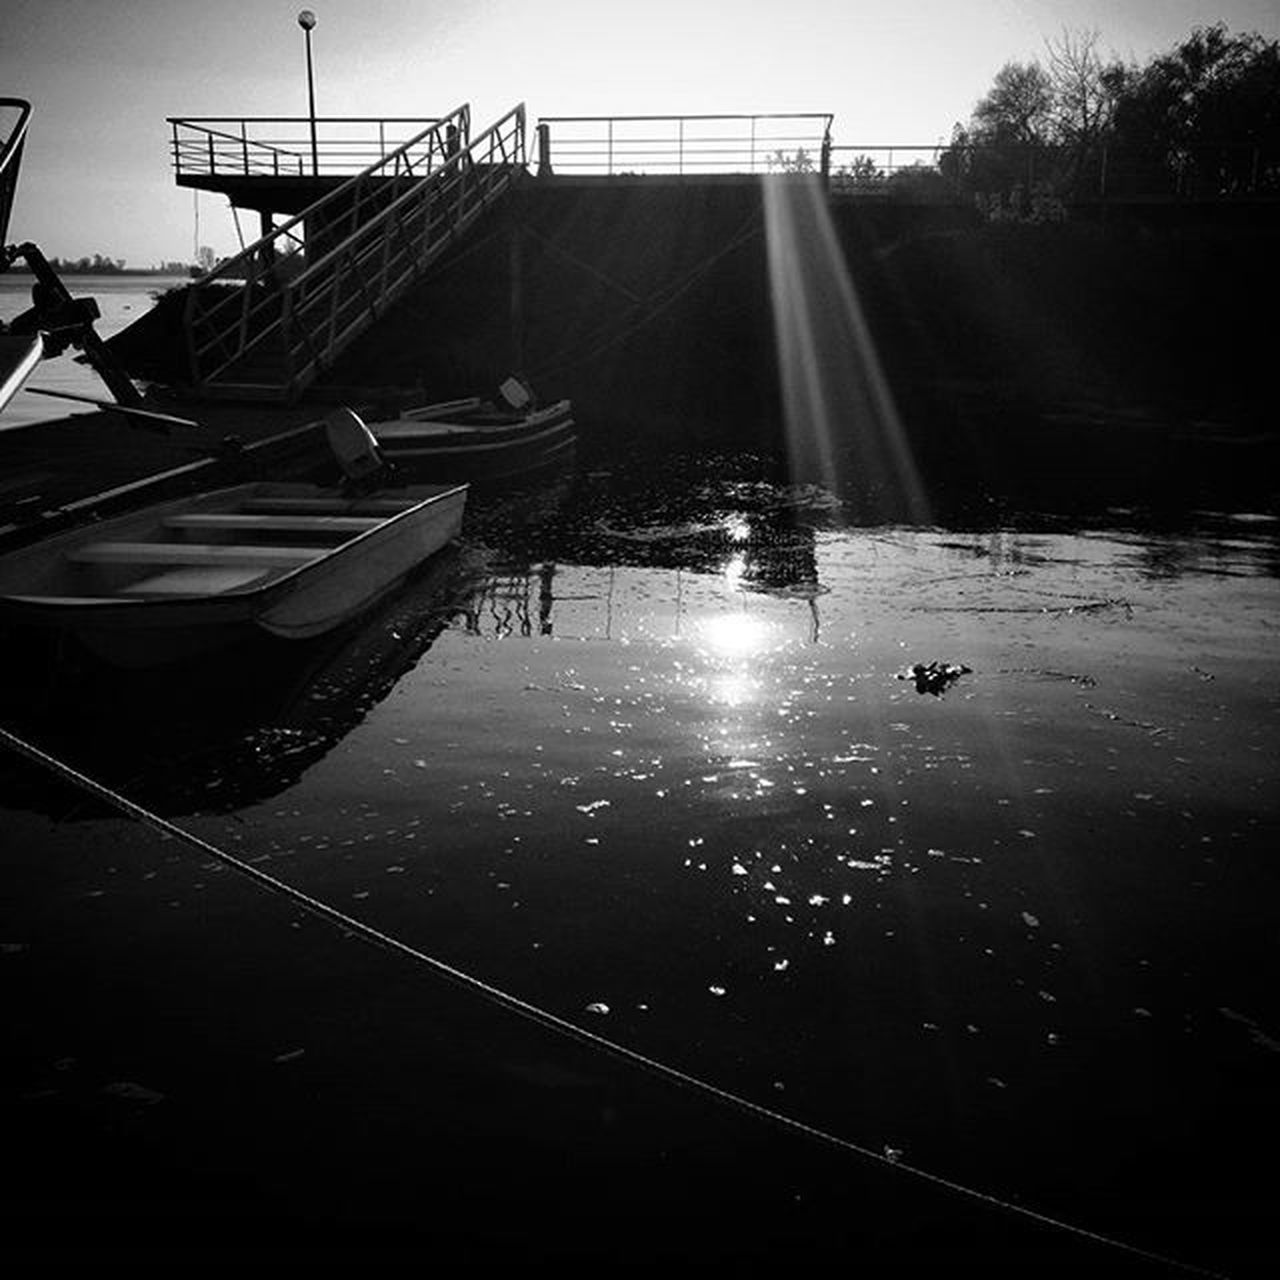 Light Sunnydayswillcome Blessed  Peaceful Warm Enjoyit Sunset Winter Blackandwhite Blancnoir Water River Sailing Bridge Dock Portugal Igers Shootingtheglobe Landscape Landscape_lovers Laliphotography